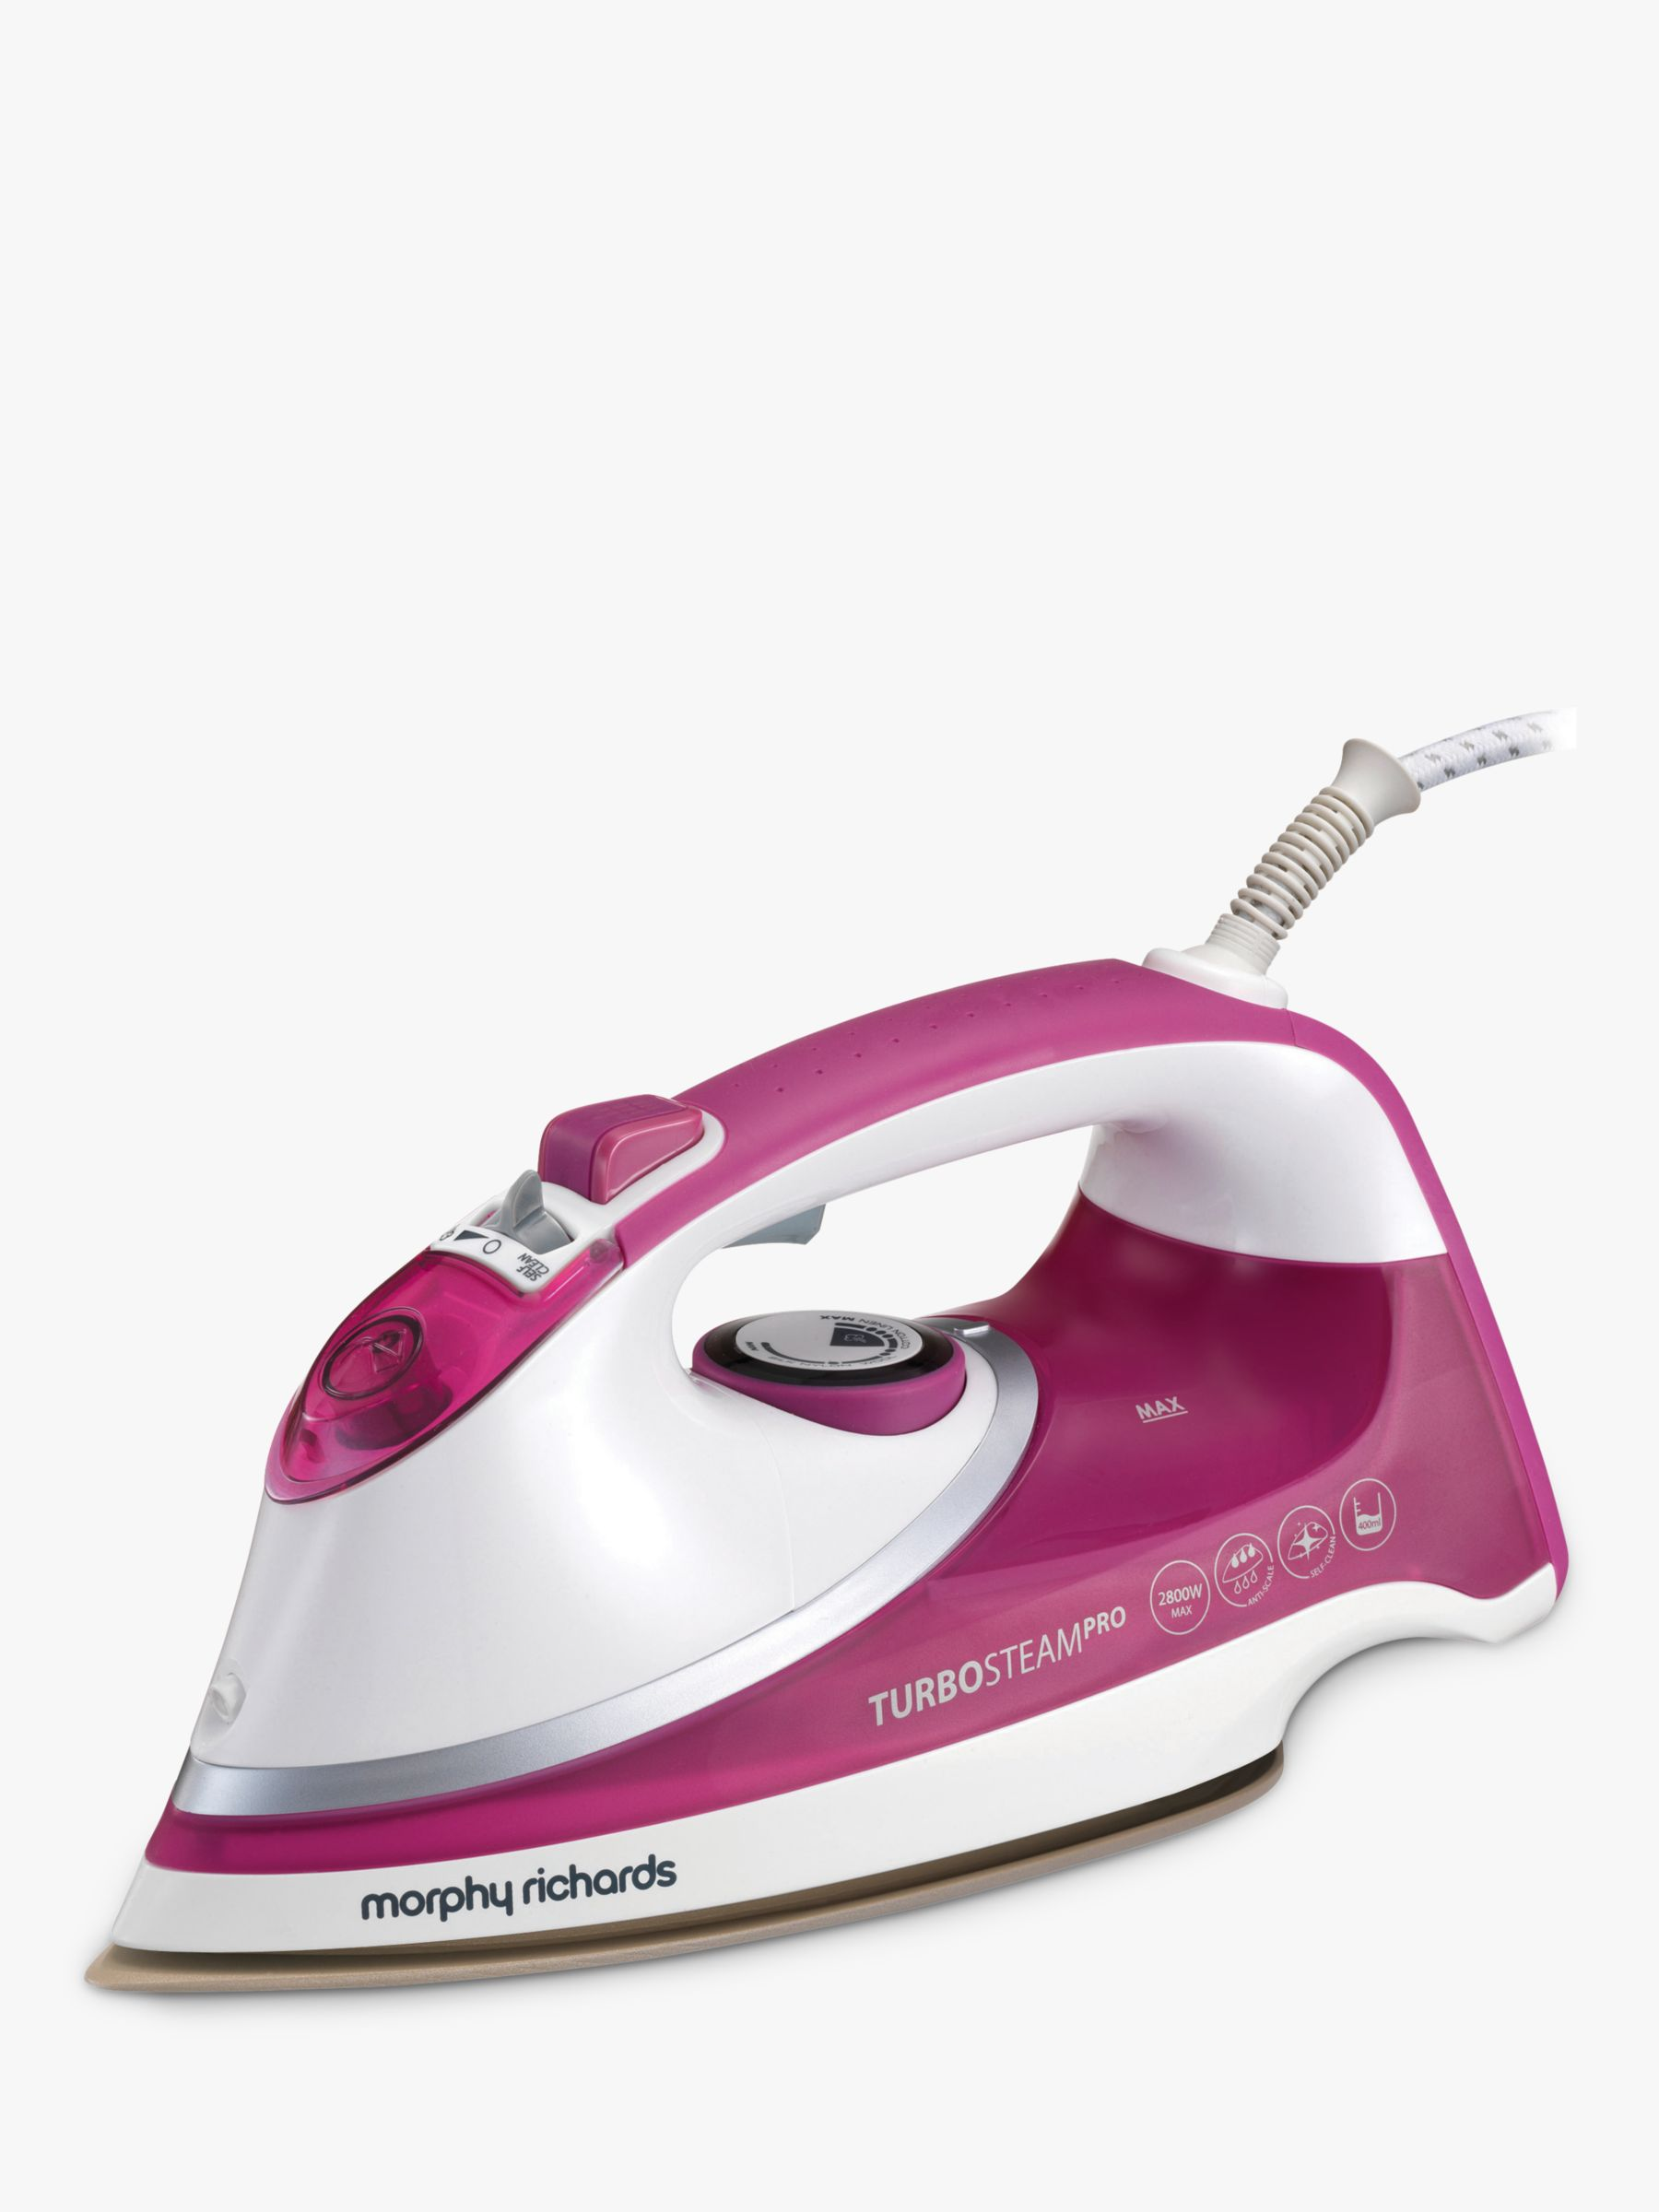 Morphy Richards Morphy Richards Turbosteam Pro Steam Ceramic Iron, Pink